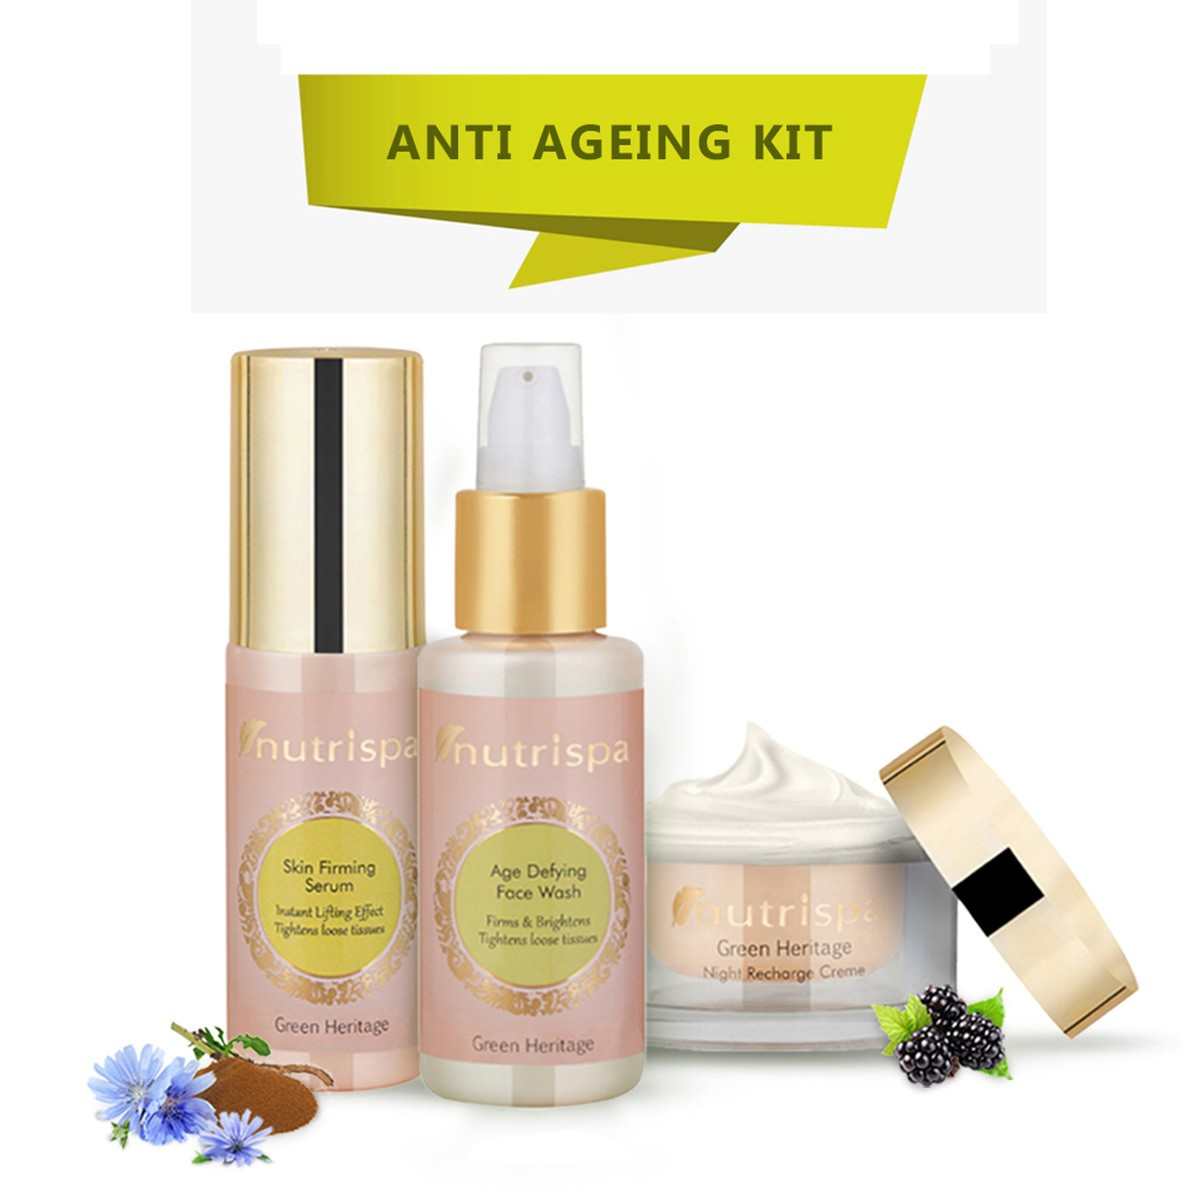 Nutrispa Green Heritage - Anti Ageing Skin Care Kit